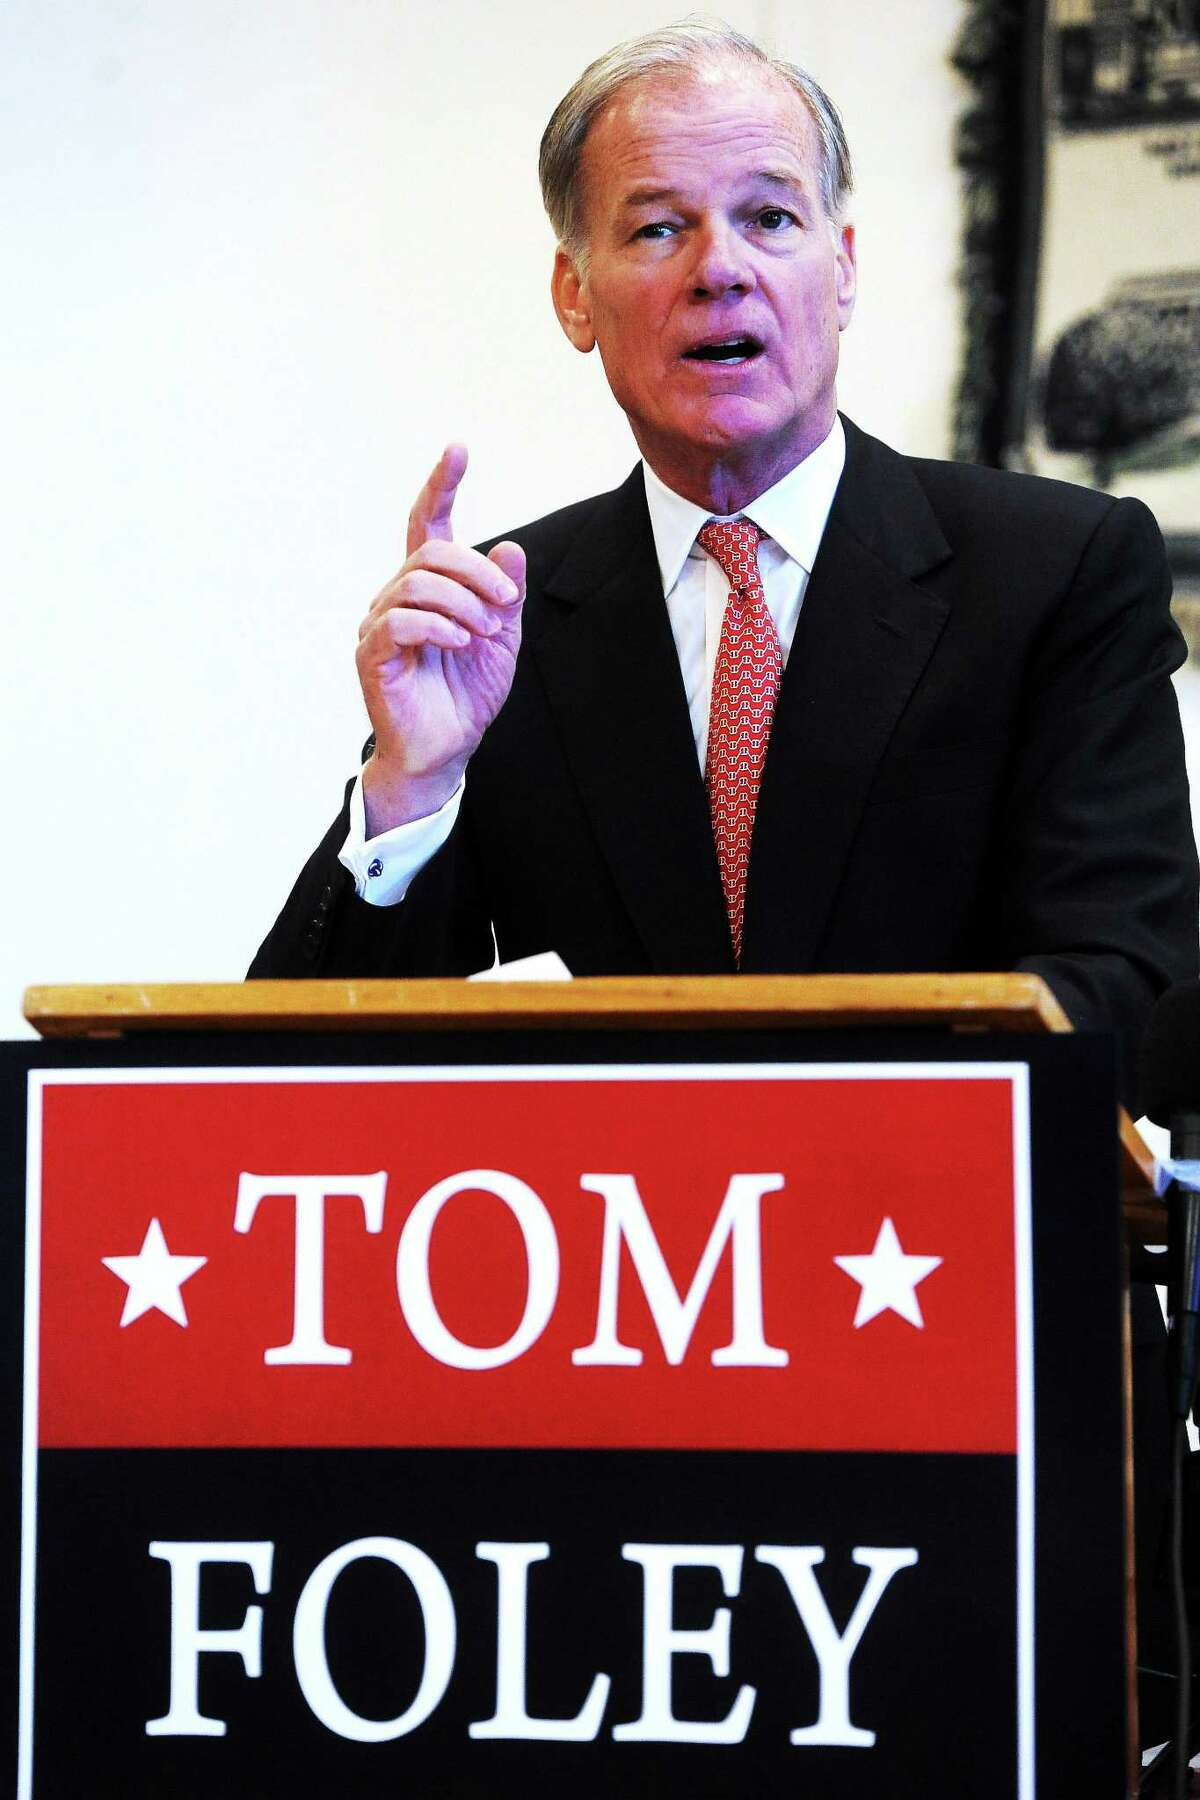 In this Jan. 29 file photo, Tom Foley of Greenwich announced he would run for the Republican nominee for governor, at the Wheeler Young VFW Post 201 in Waterbury.